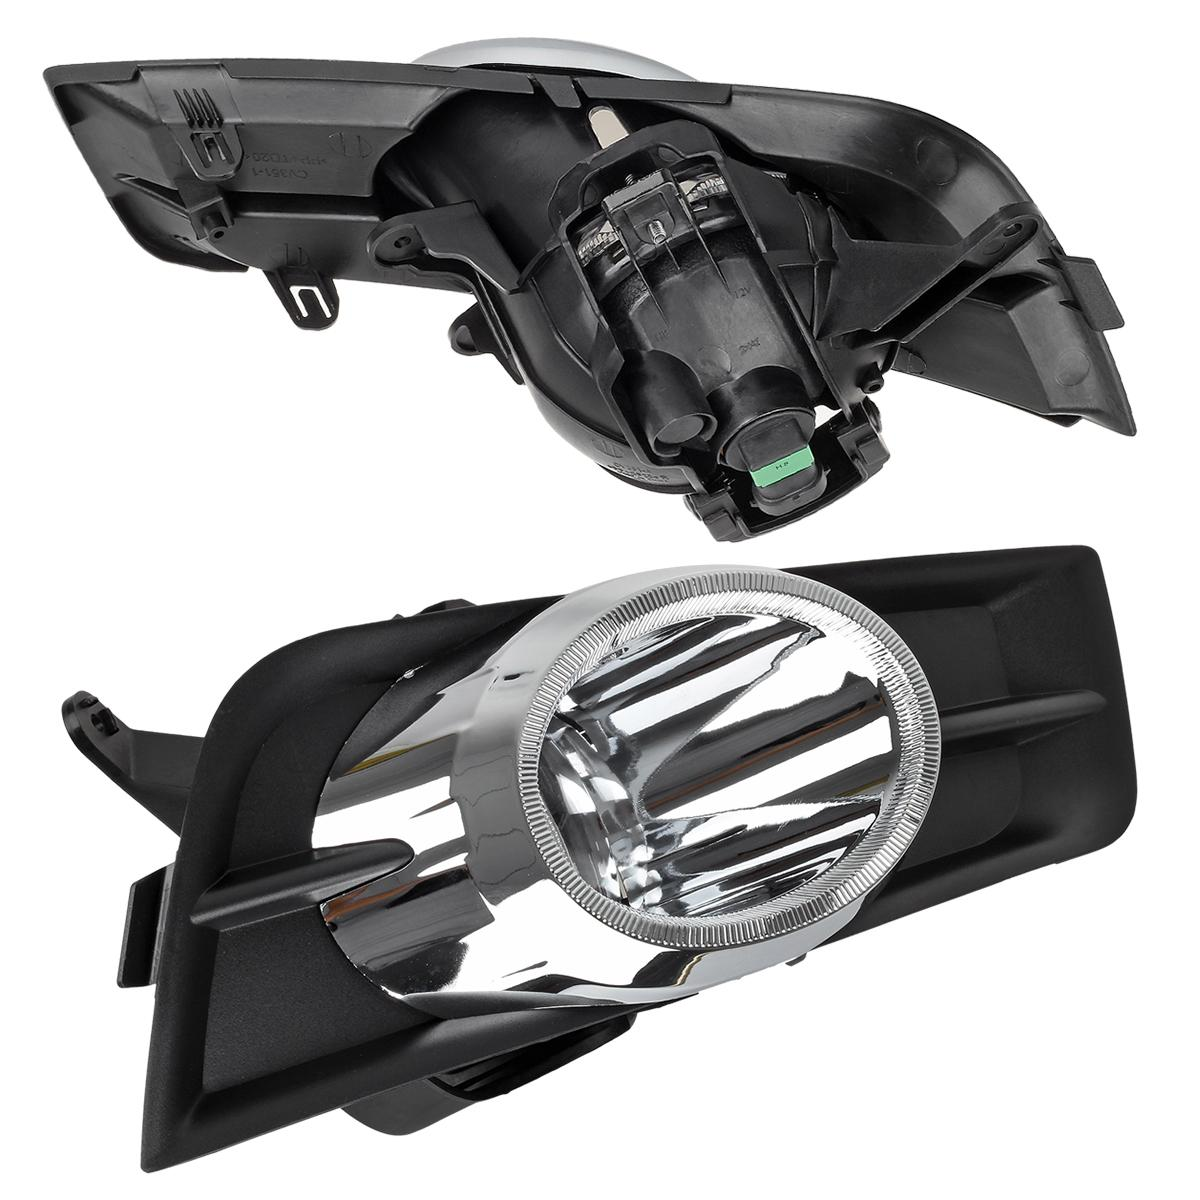 2011-2014 Chevy Cruze Black DRL Rope LED Projector Headlights  |2014 Chevy Cruze Lights